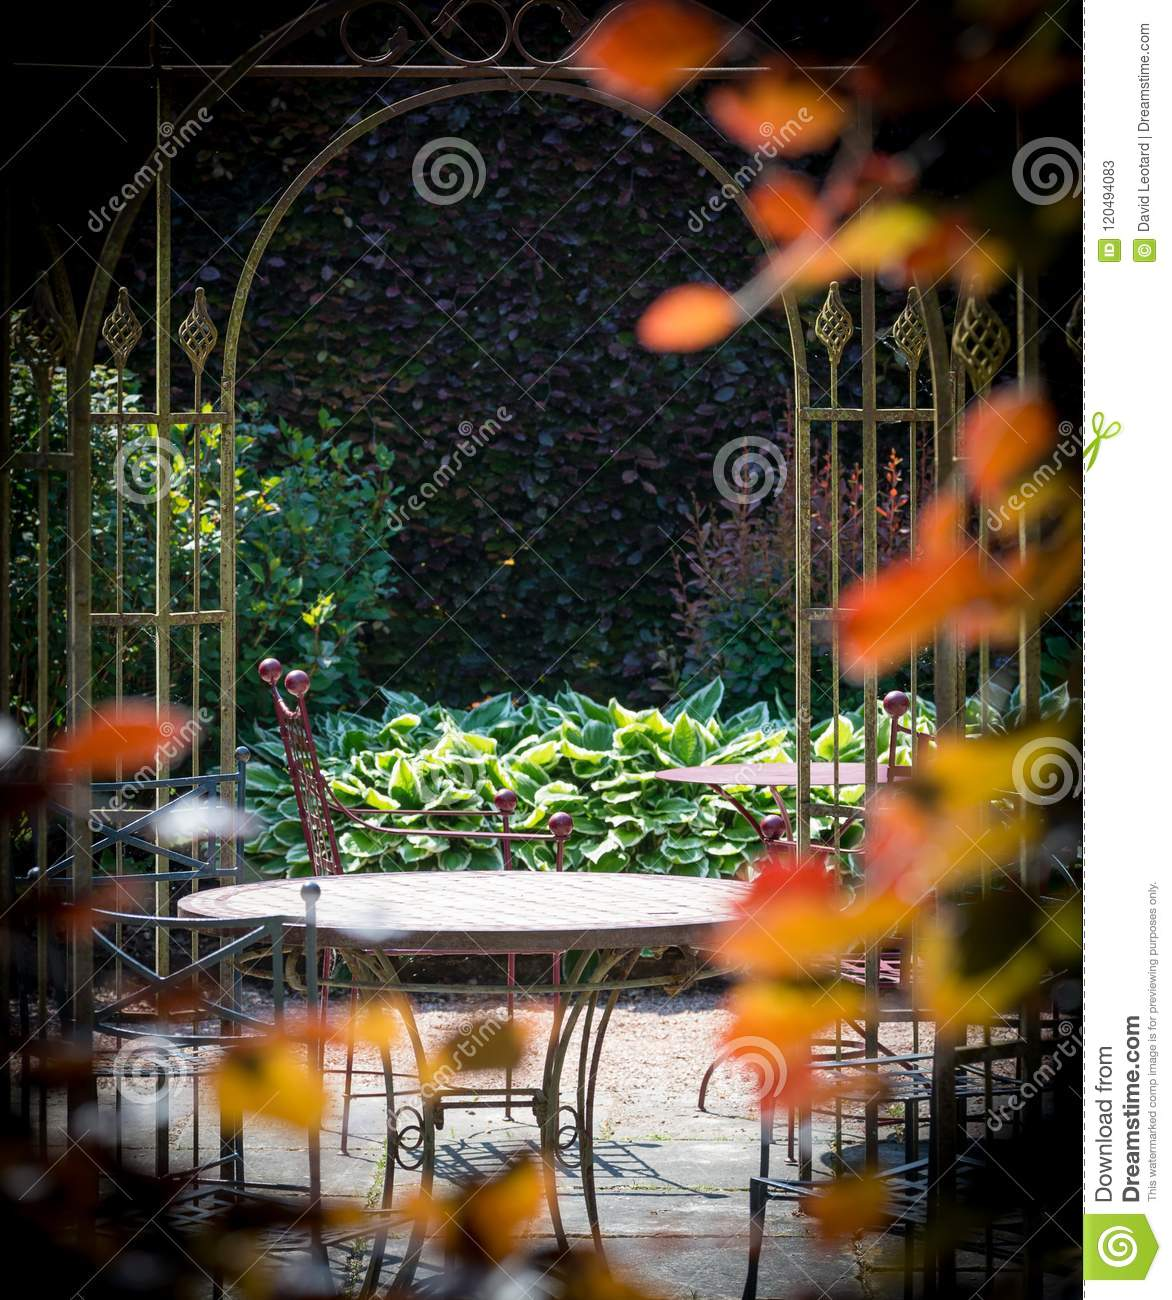 Garden with chairs and a table in the middle of shrubs in color.